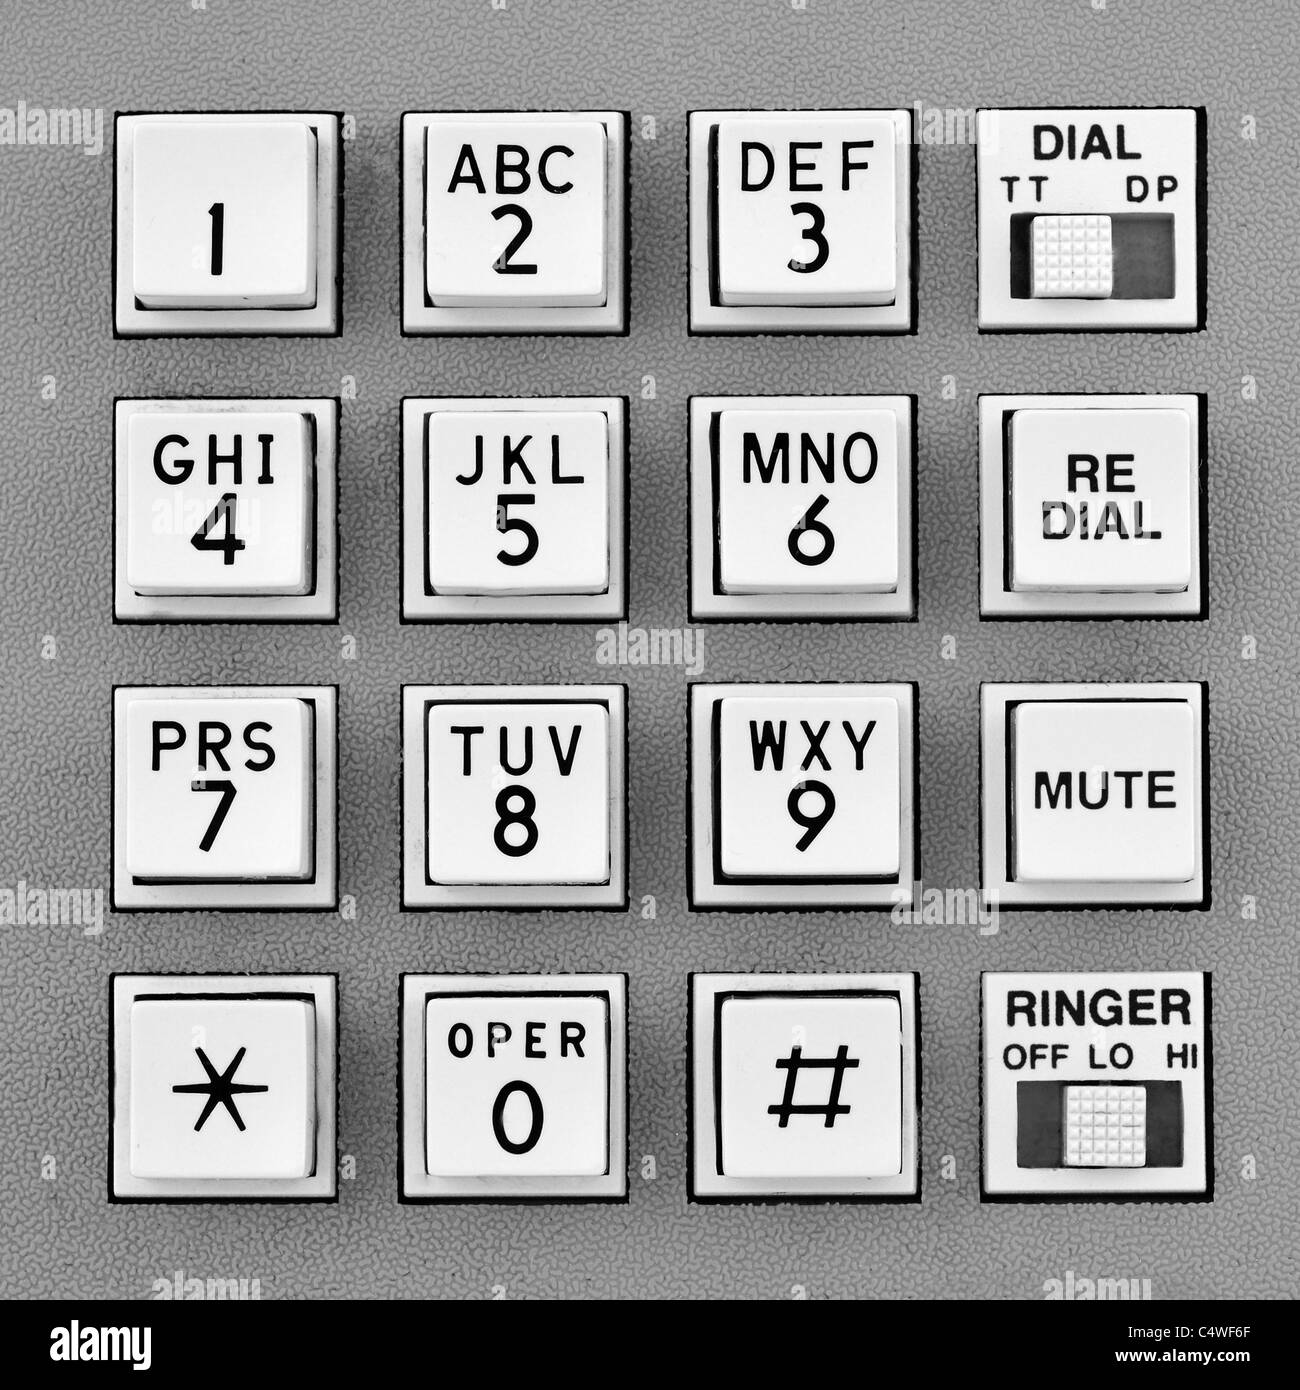 telephone push button pad for touch tone dialing Stock Photo